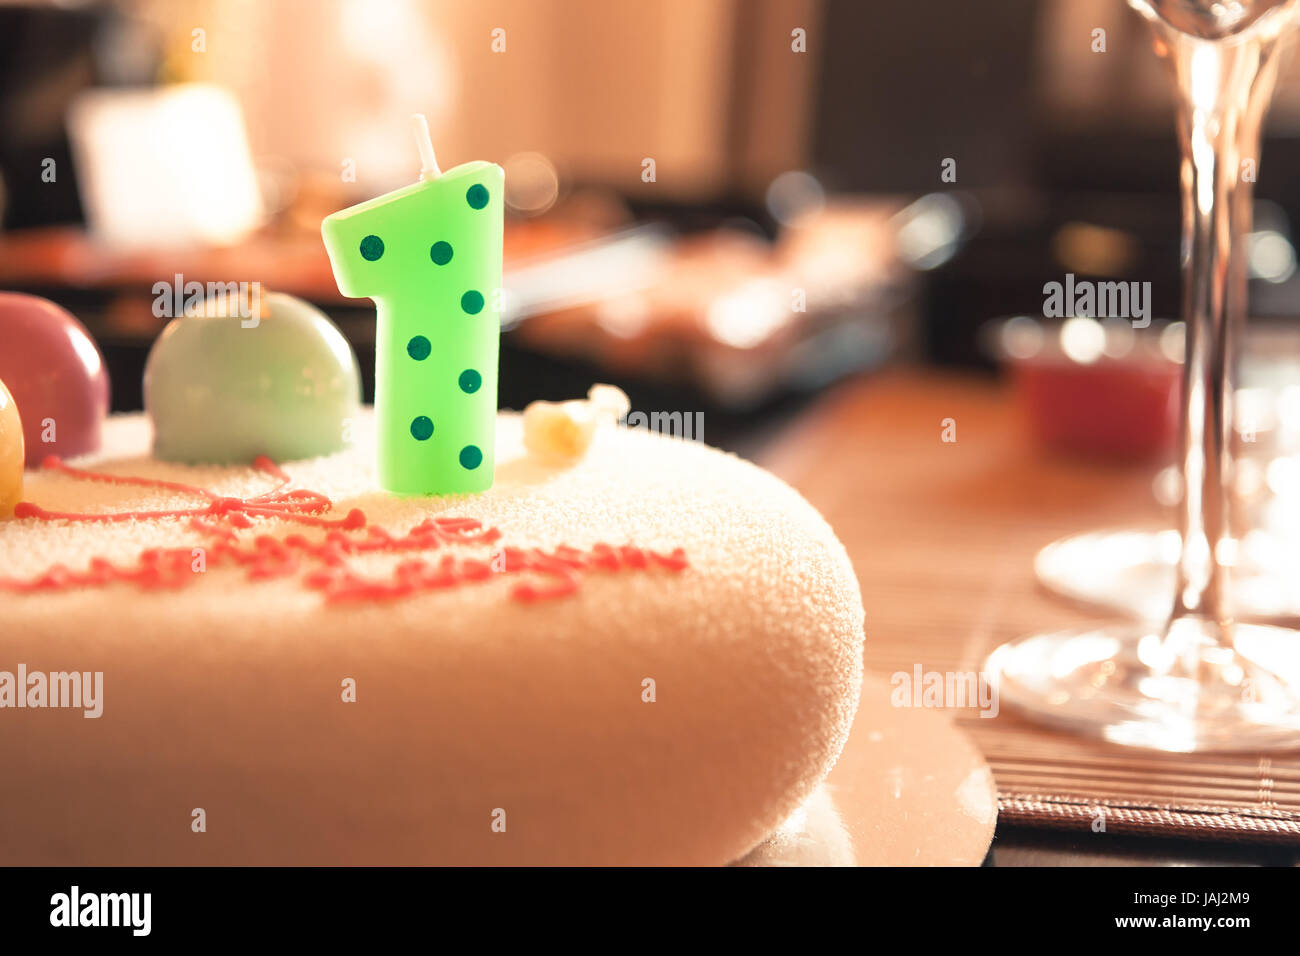 Happy birthday cake for children party decorated with one candle and sweet balloons in honour of first birthday - Stock Image